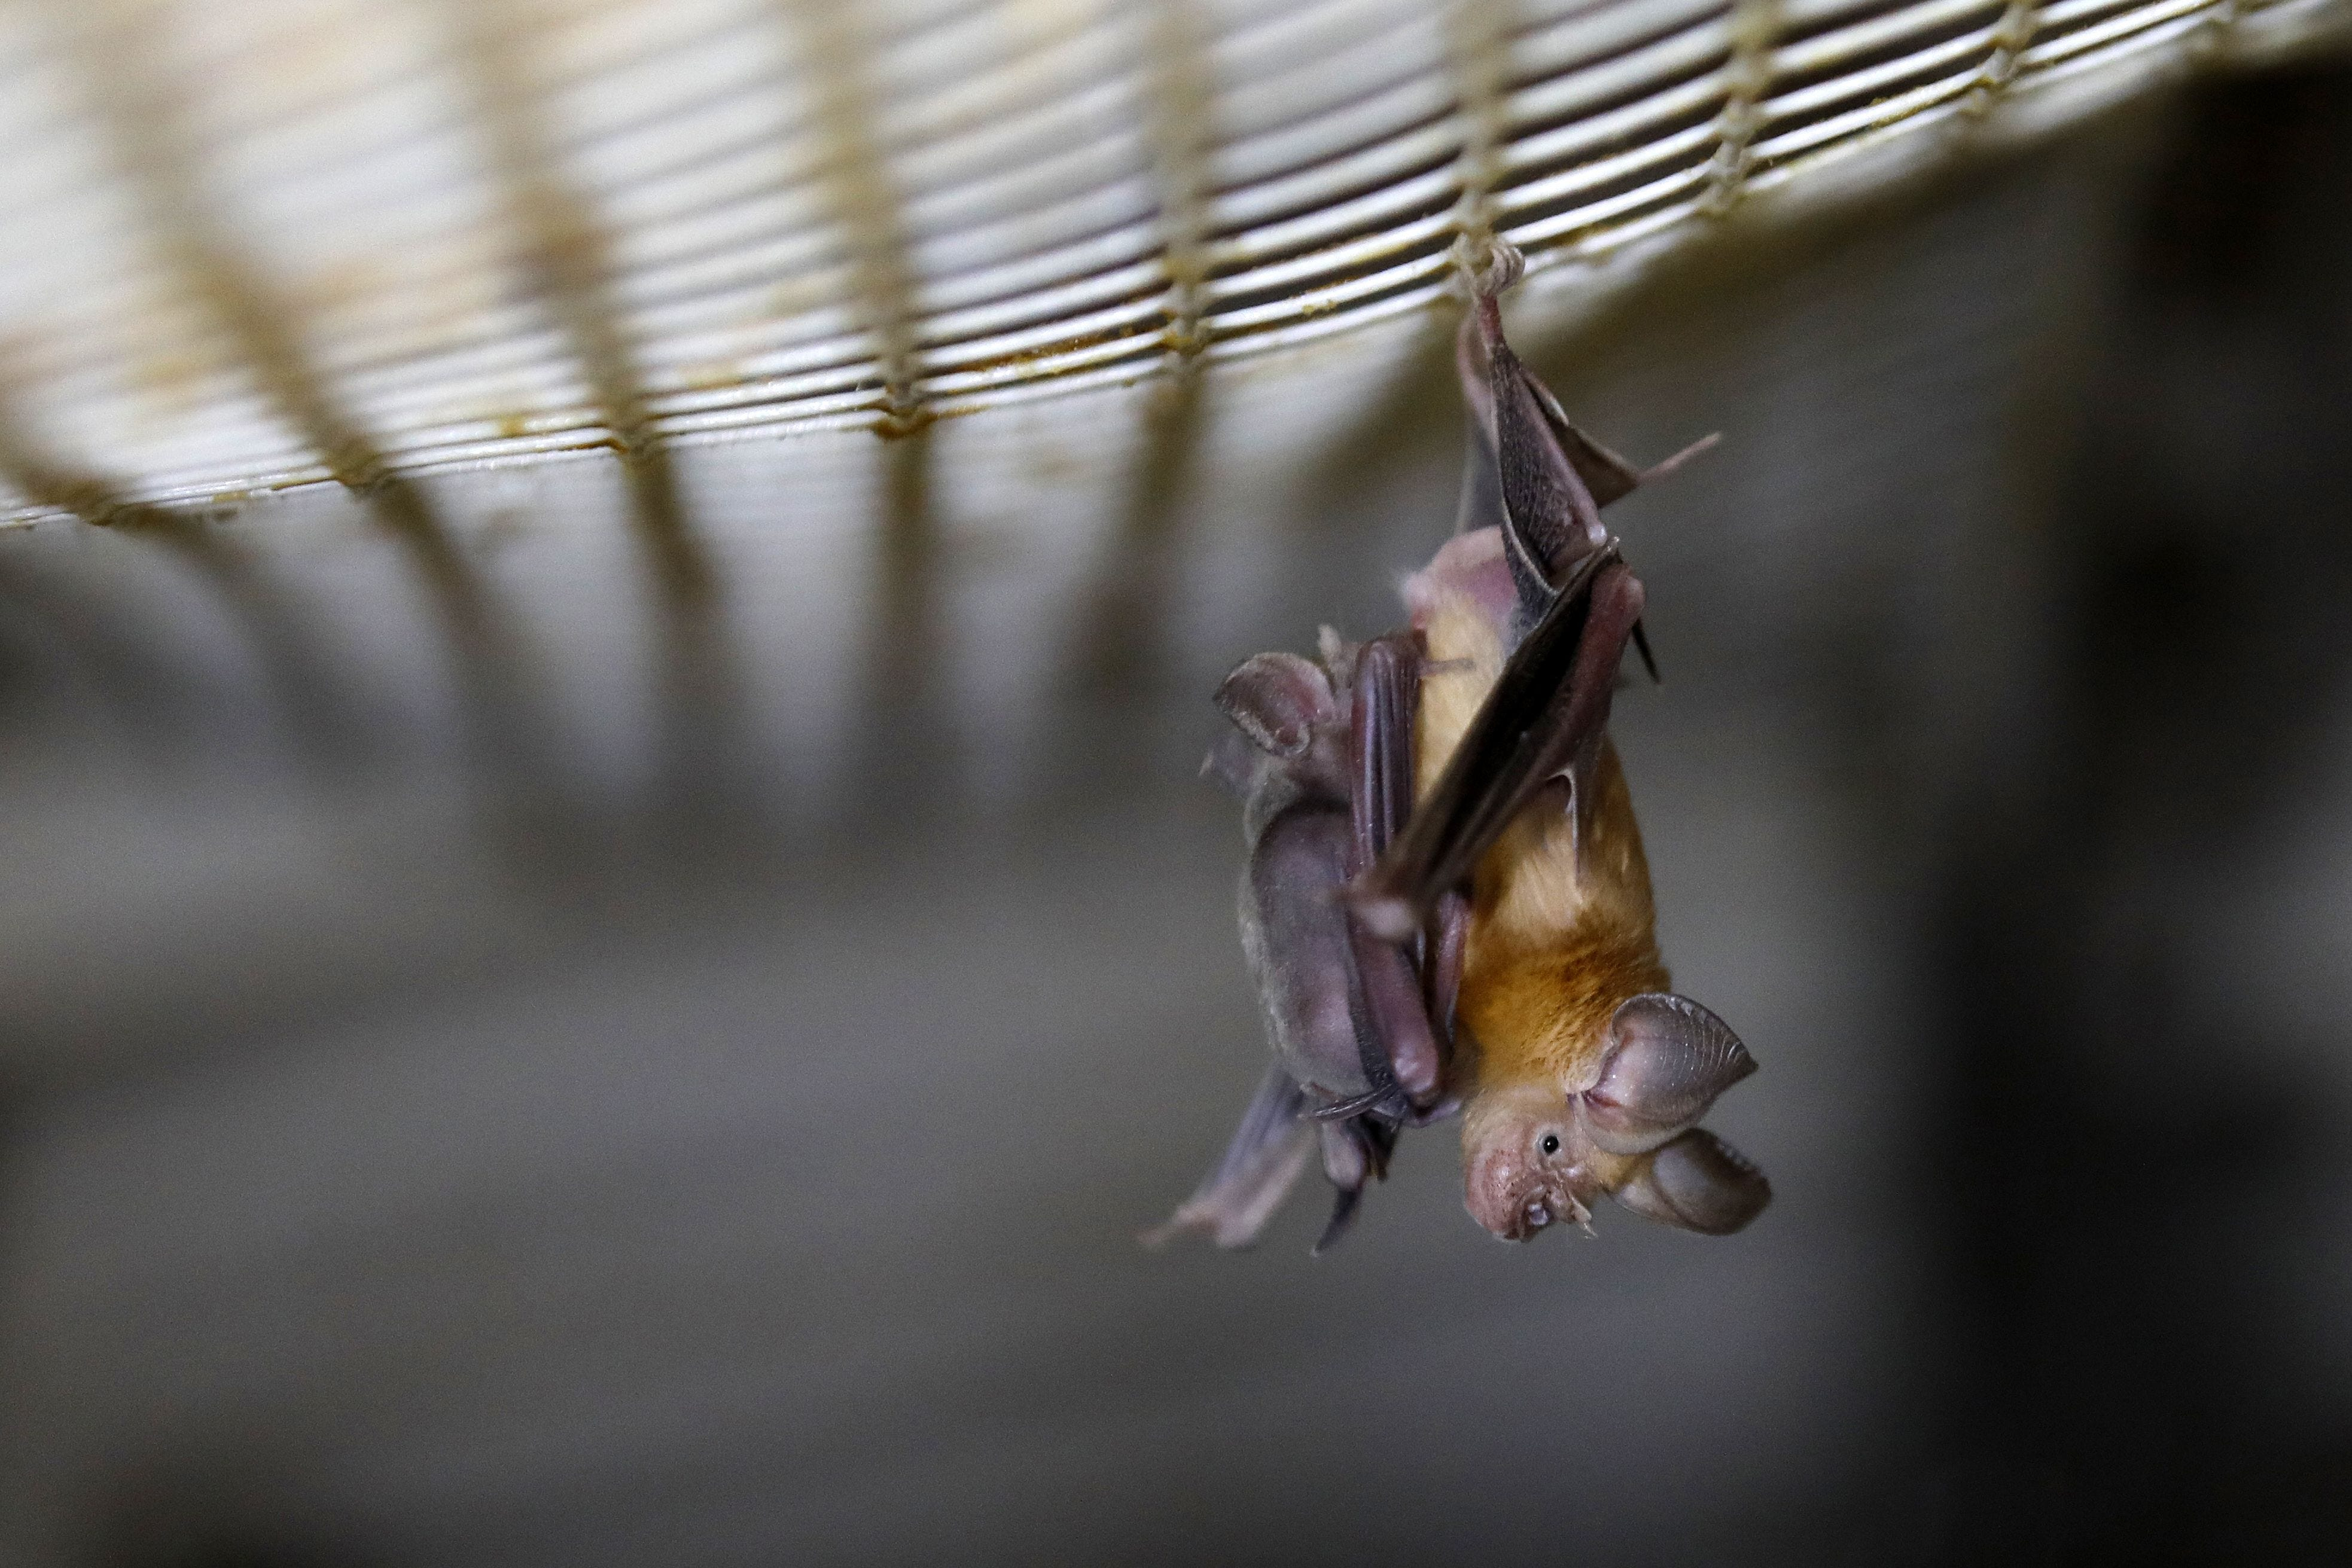 A horseshoe bat hangs from a net inside an abandoned Israeli army outpost next to the Jordan River in the occupied West Bank, on July 7, 2019.